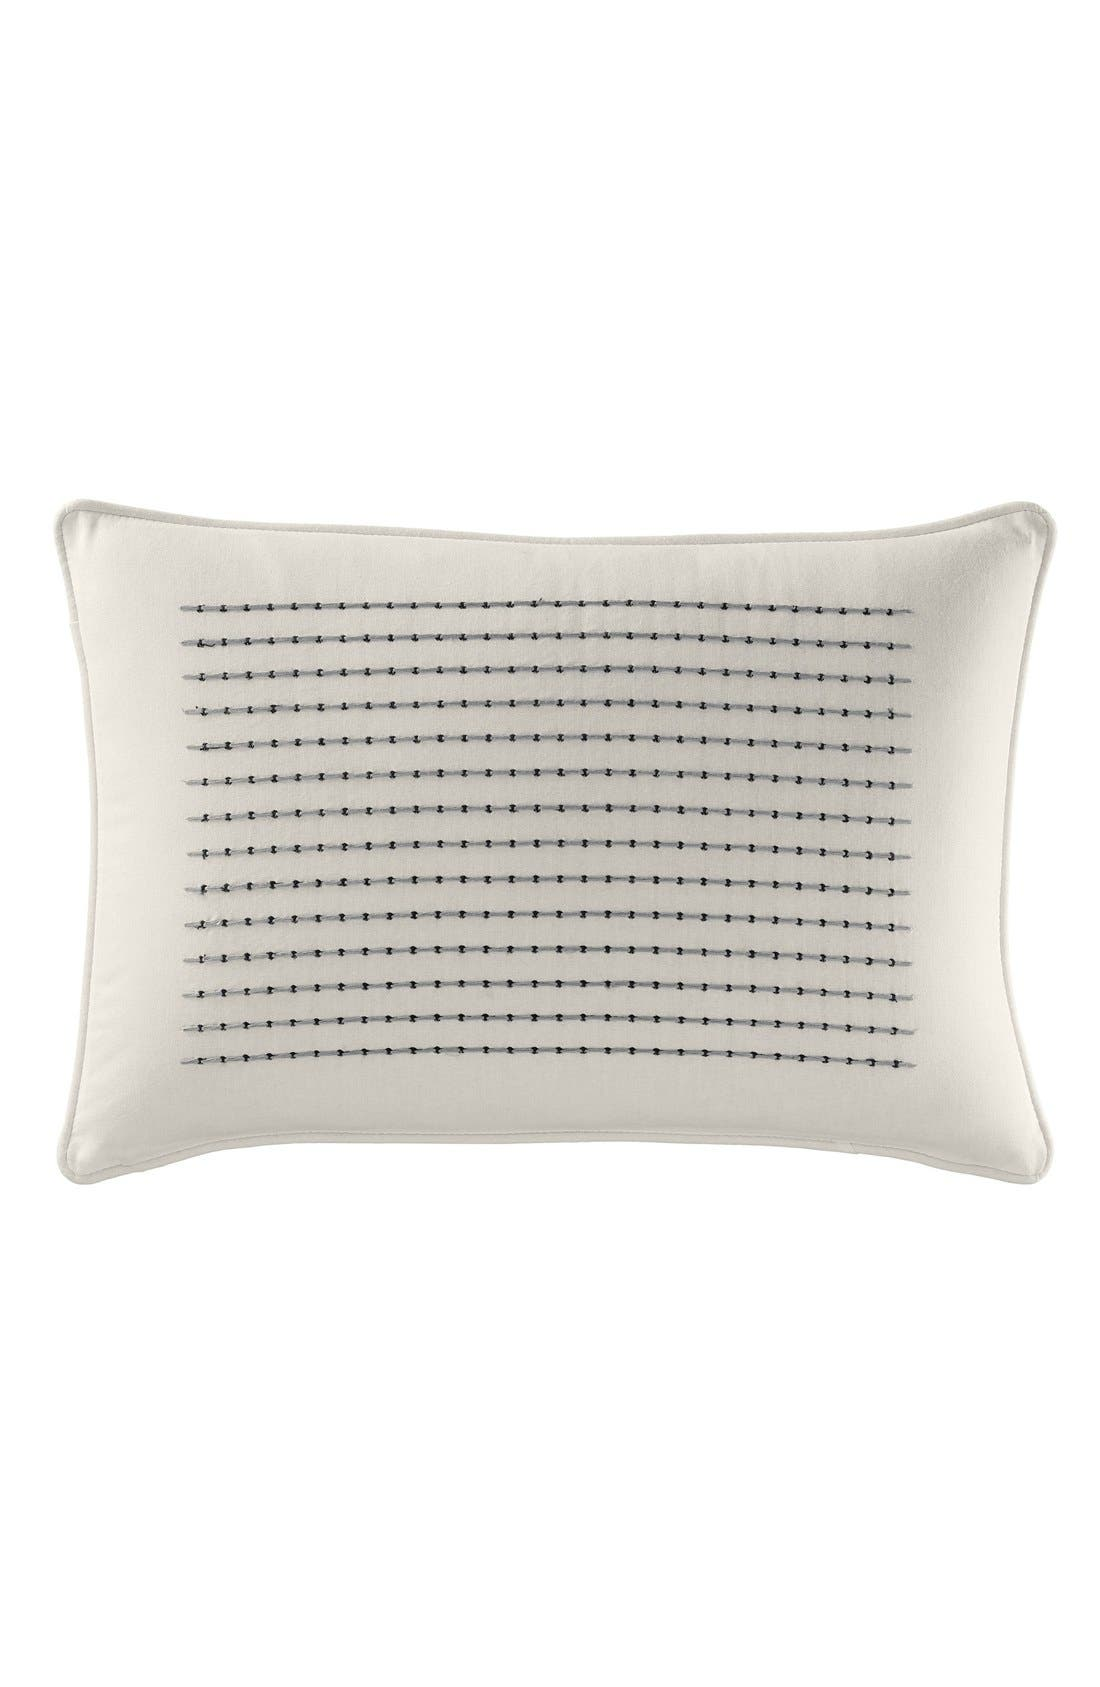 Caldwell Embroidered Pillow,                             Main thumbnail 1, color,                             100